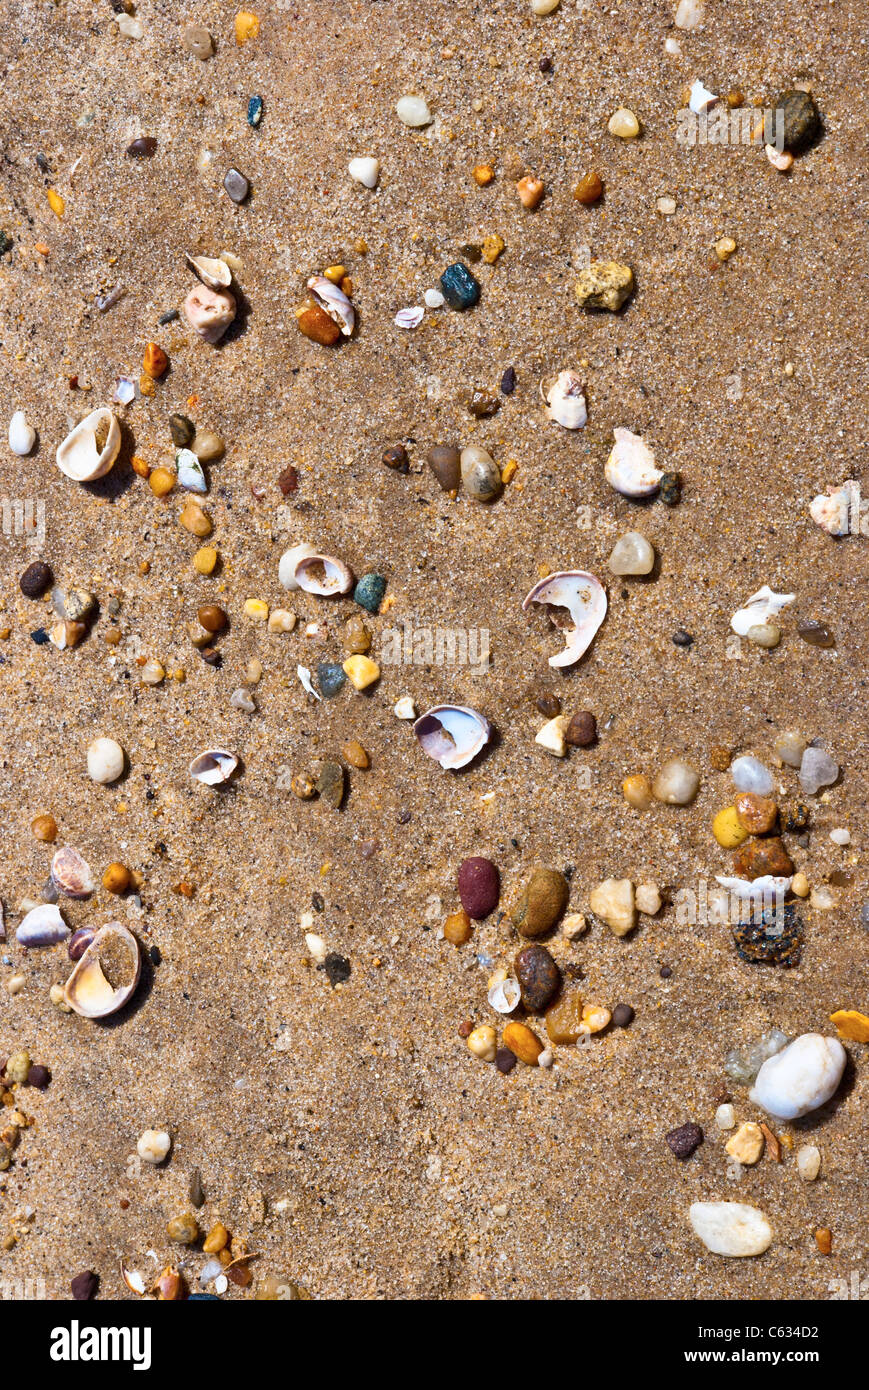 Stones, Shells, Sand Abstraction - Stock Image